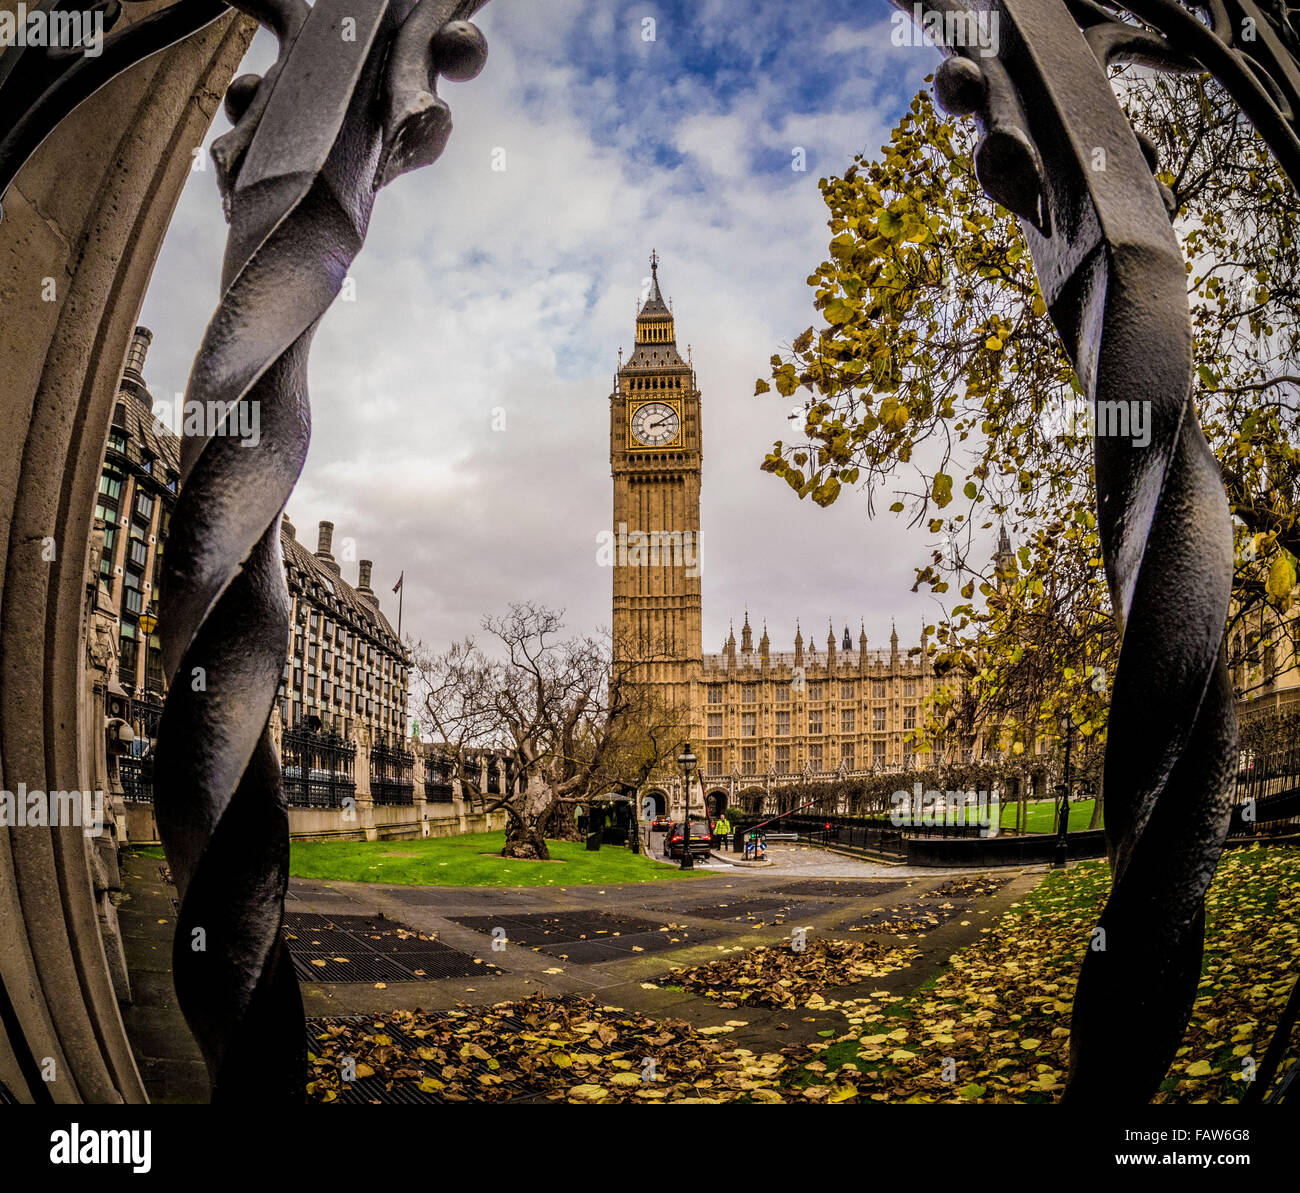 Big Ben et les chambres du Parlement, Londres, Royaume-Uni. Photo Stock